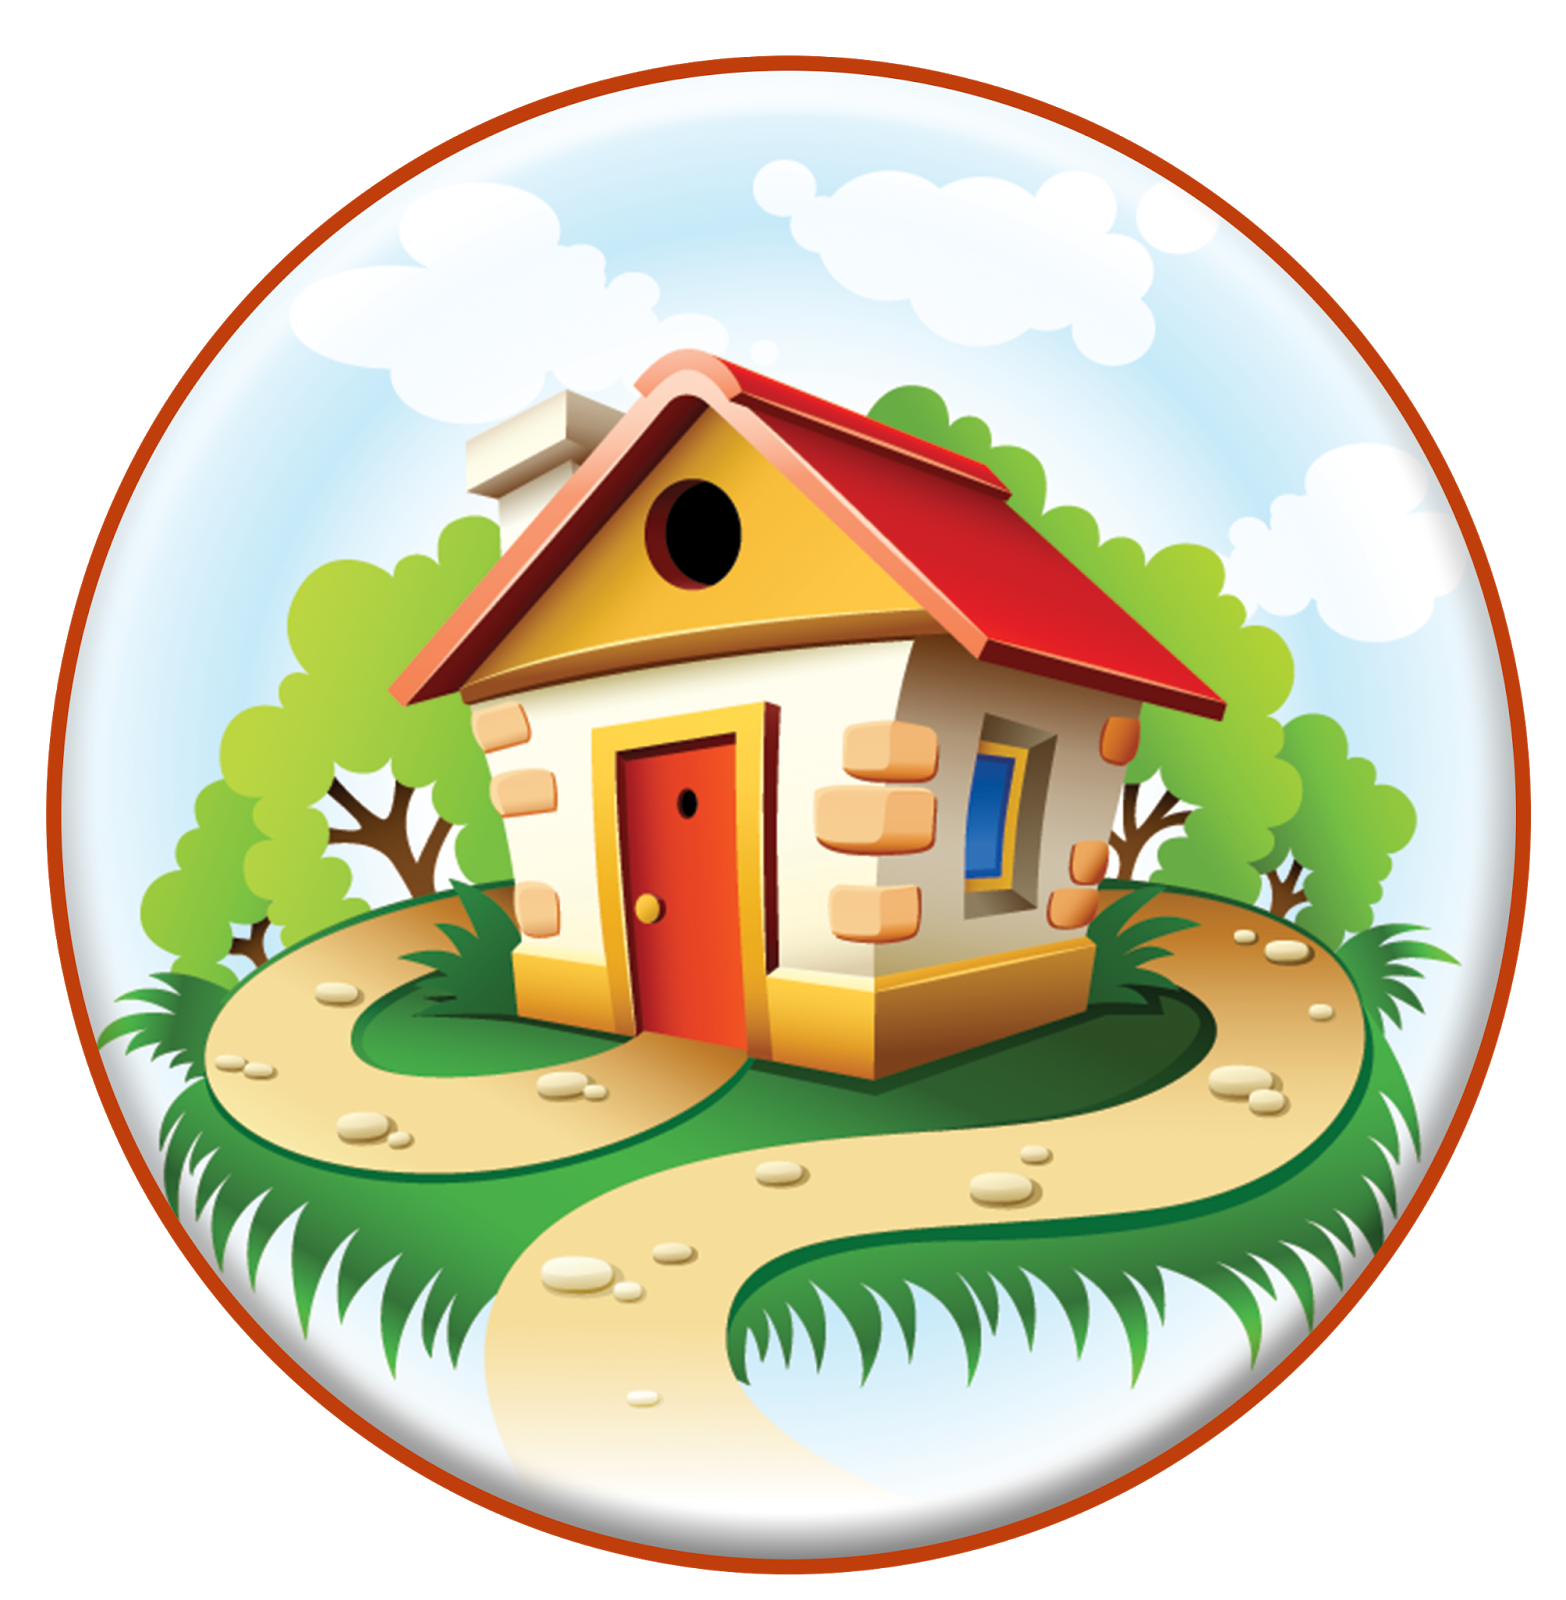 Guard house clipart jpg free Princess and Fairytale Clipart. | Oh My Fiesta! in english jpg free